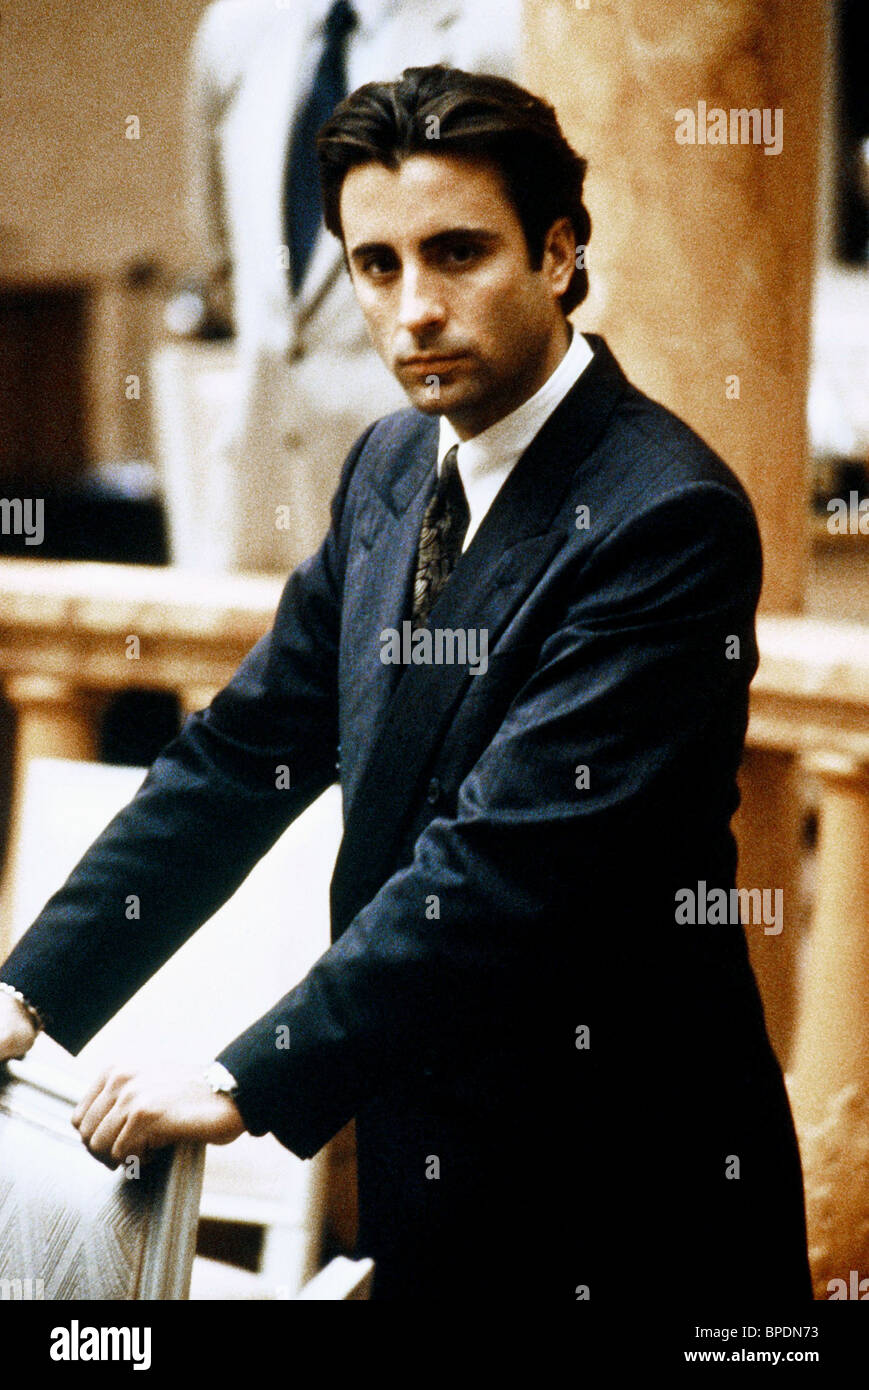 Andy Garcia The Godfather Part Iii 1990 Stock Photo Royalty Free Image 31034839 Alamy